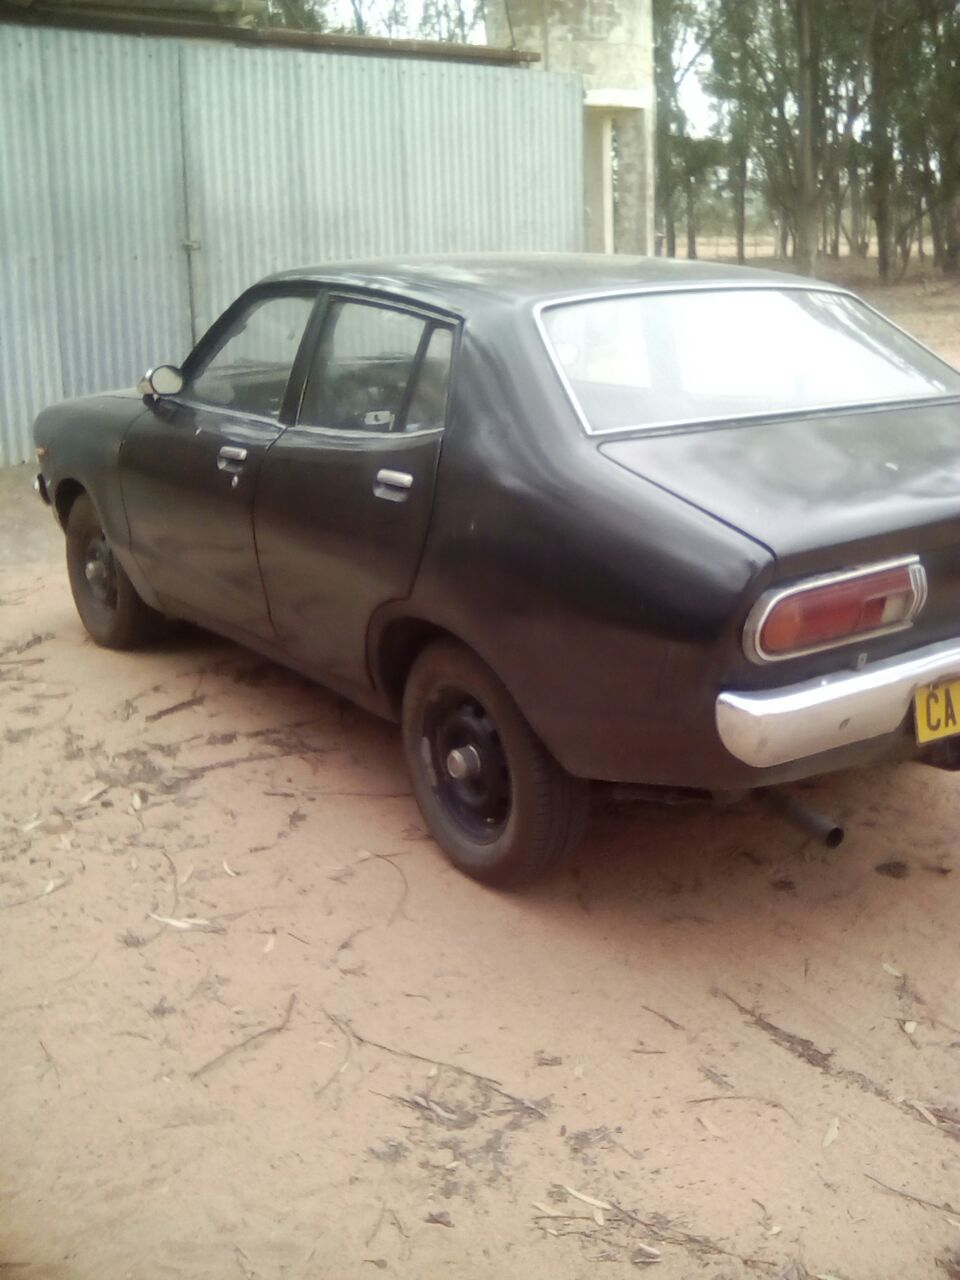 datsun 120y in Cars in South Africa | Junk Mail